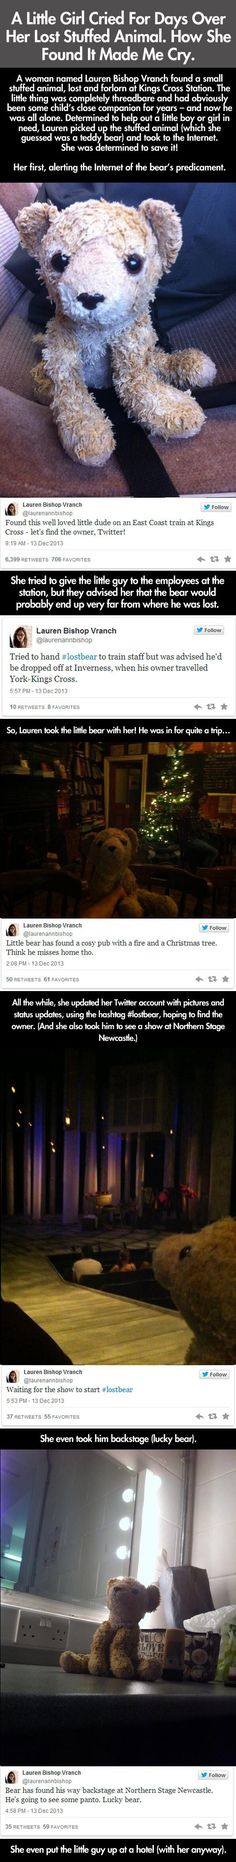 Little Girl Loses Her Stuffed Animal, Then The Internet Does Something Awesome ||| Kindness Blog